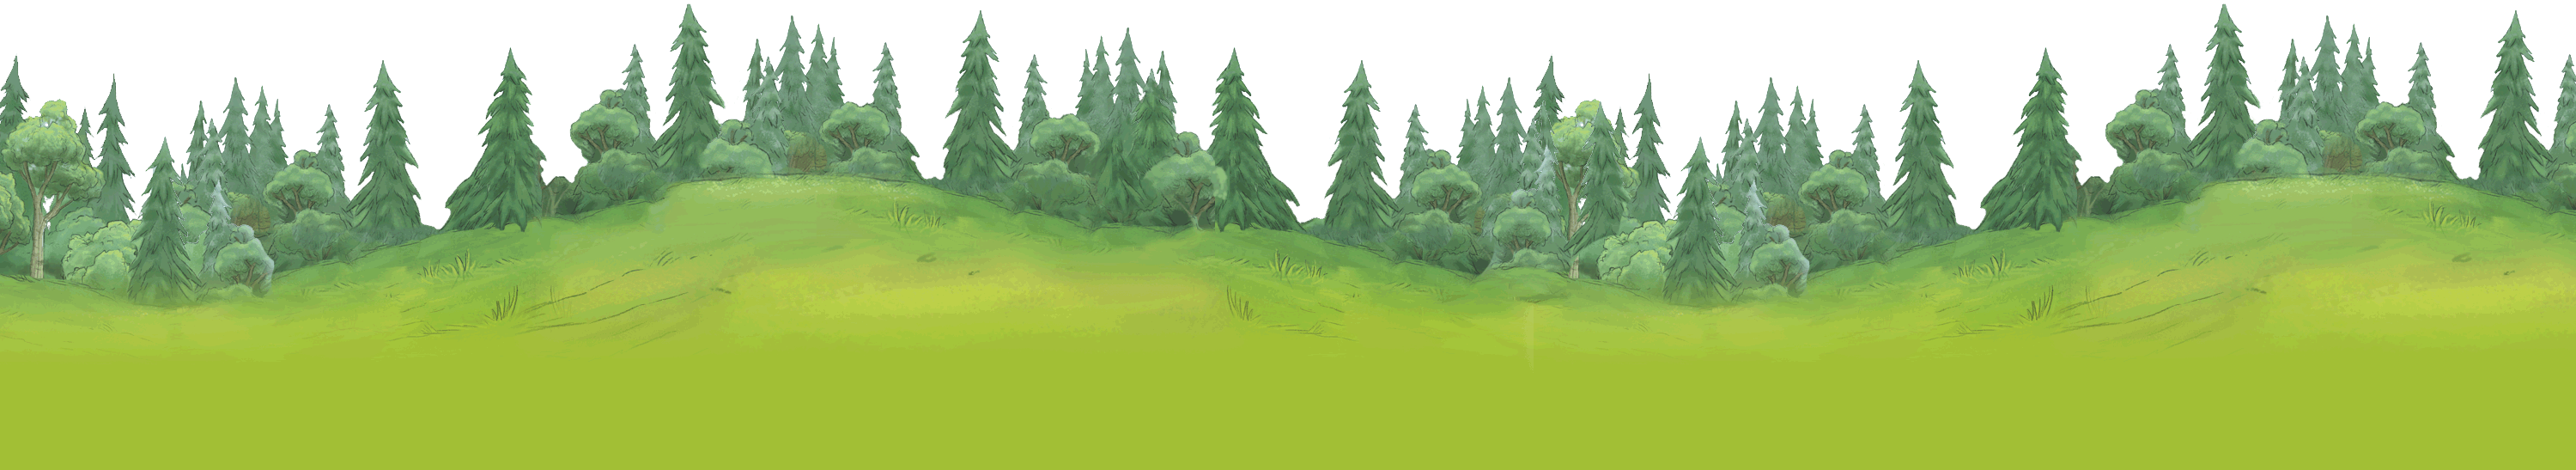 Wiley and friends free. Landscape clipart forest